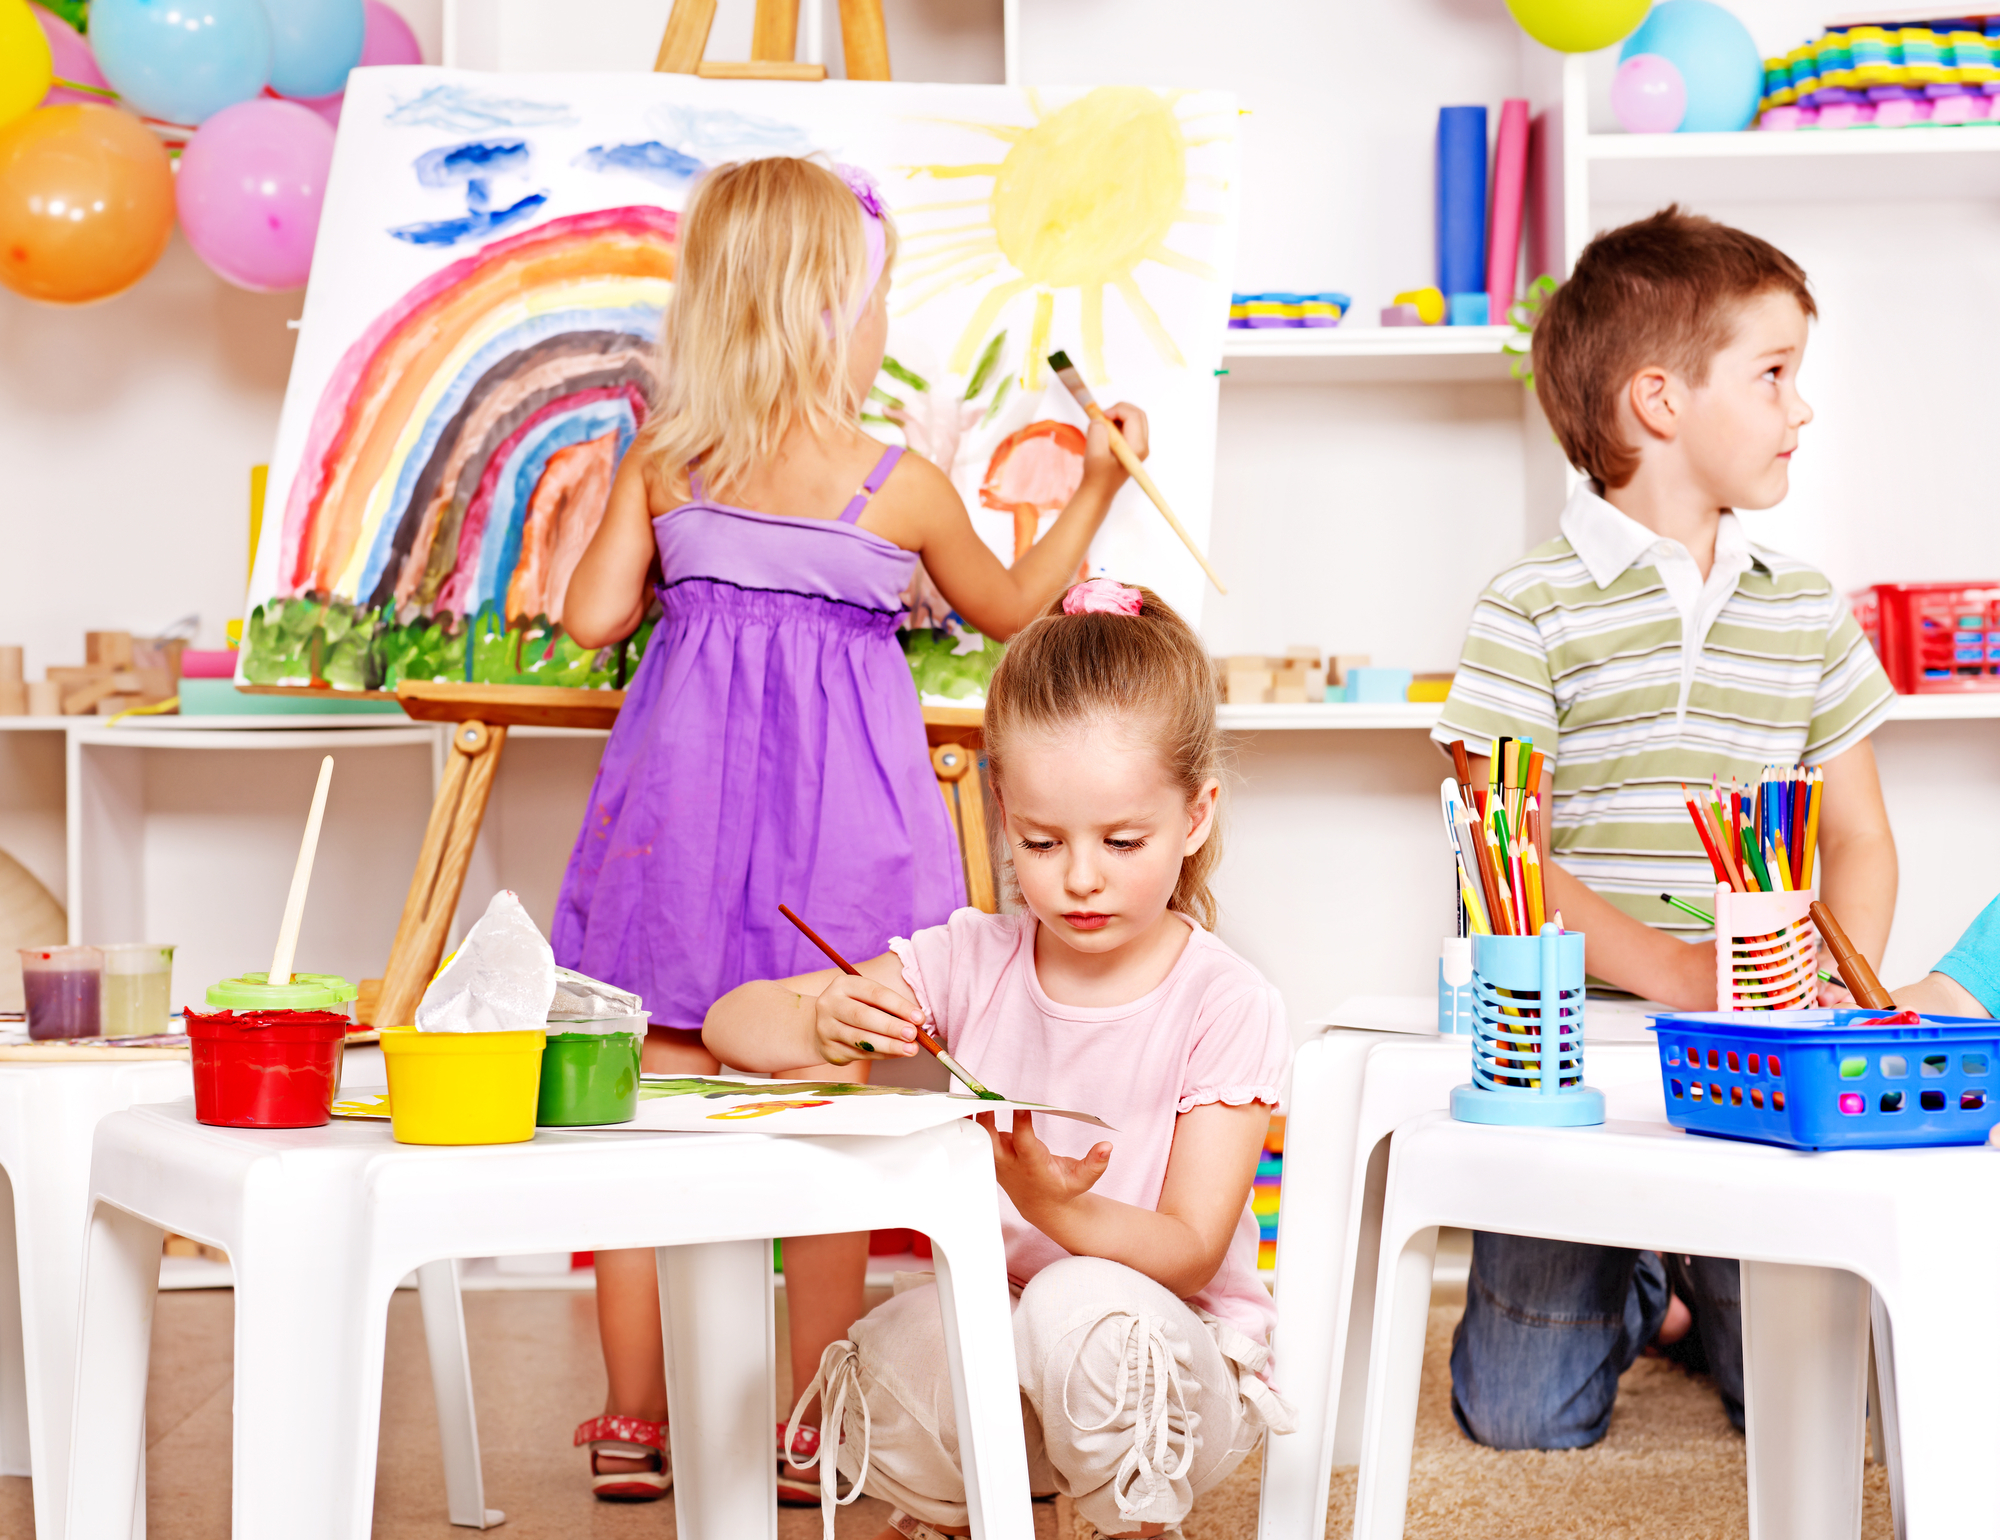 Group children painting at easel in school.